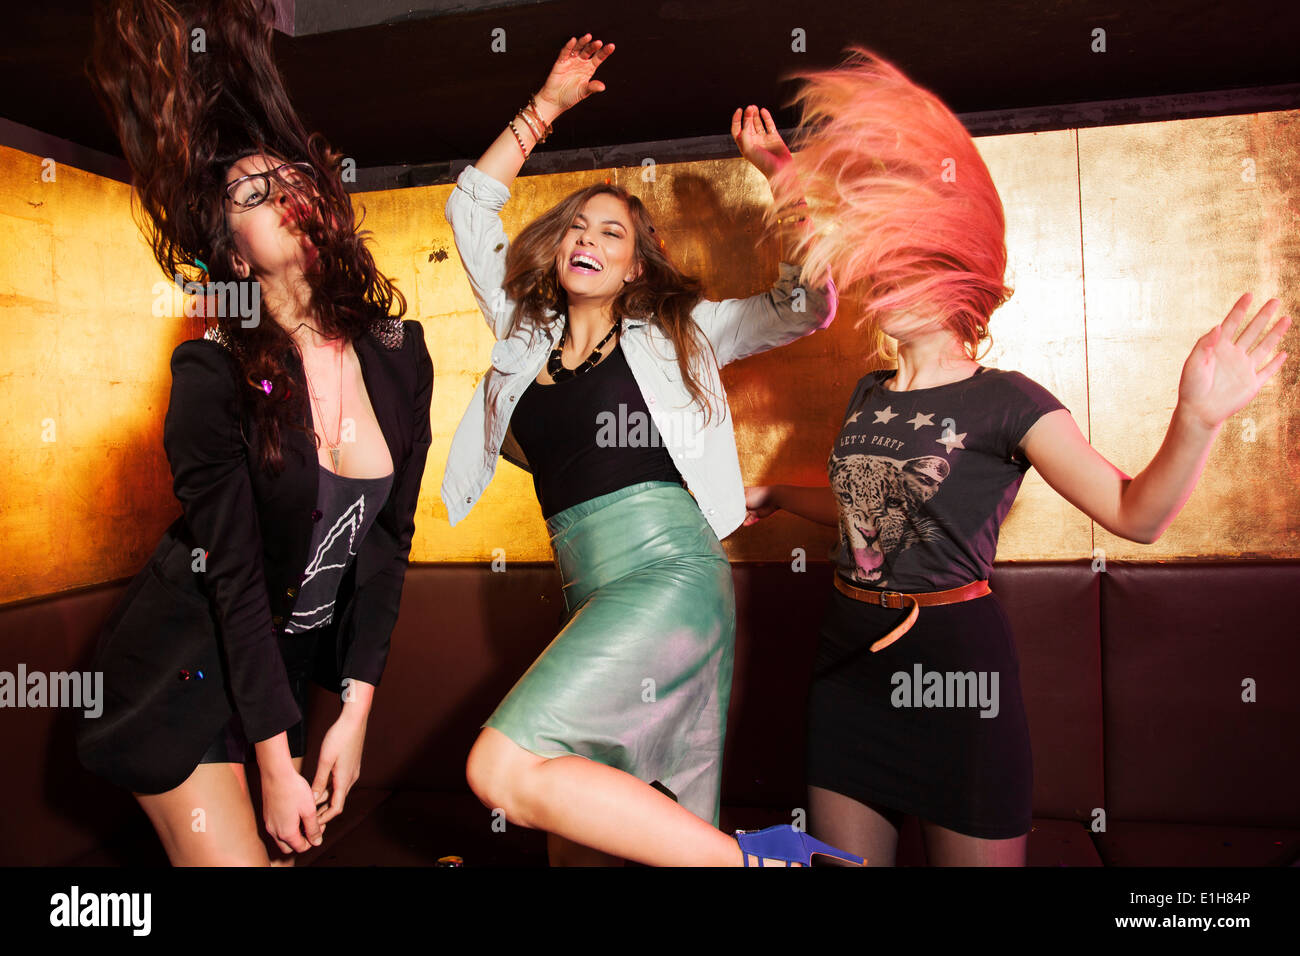 Four female friends dancing in nightclub - Stock Image